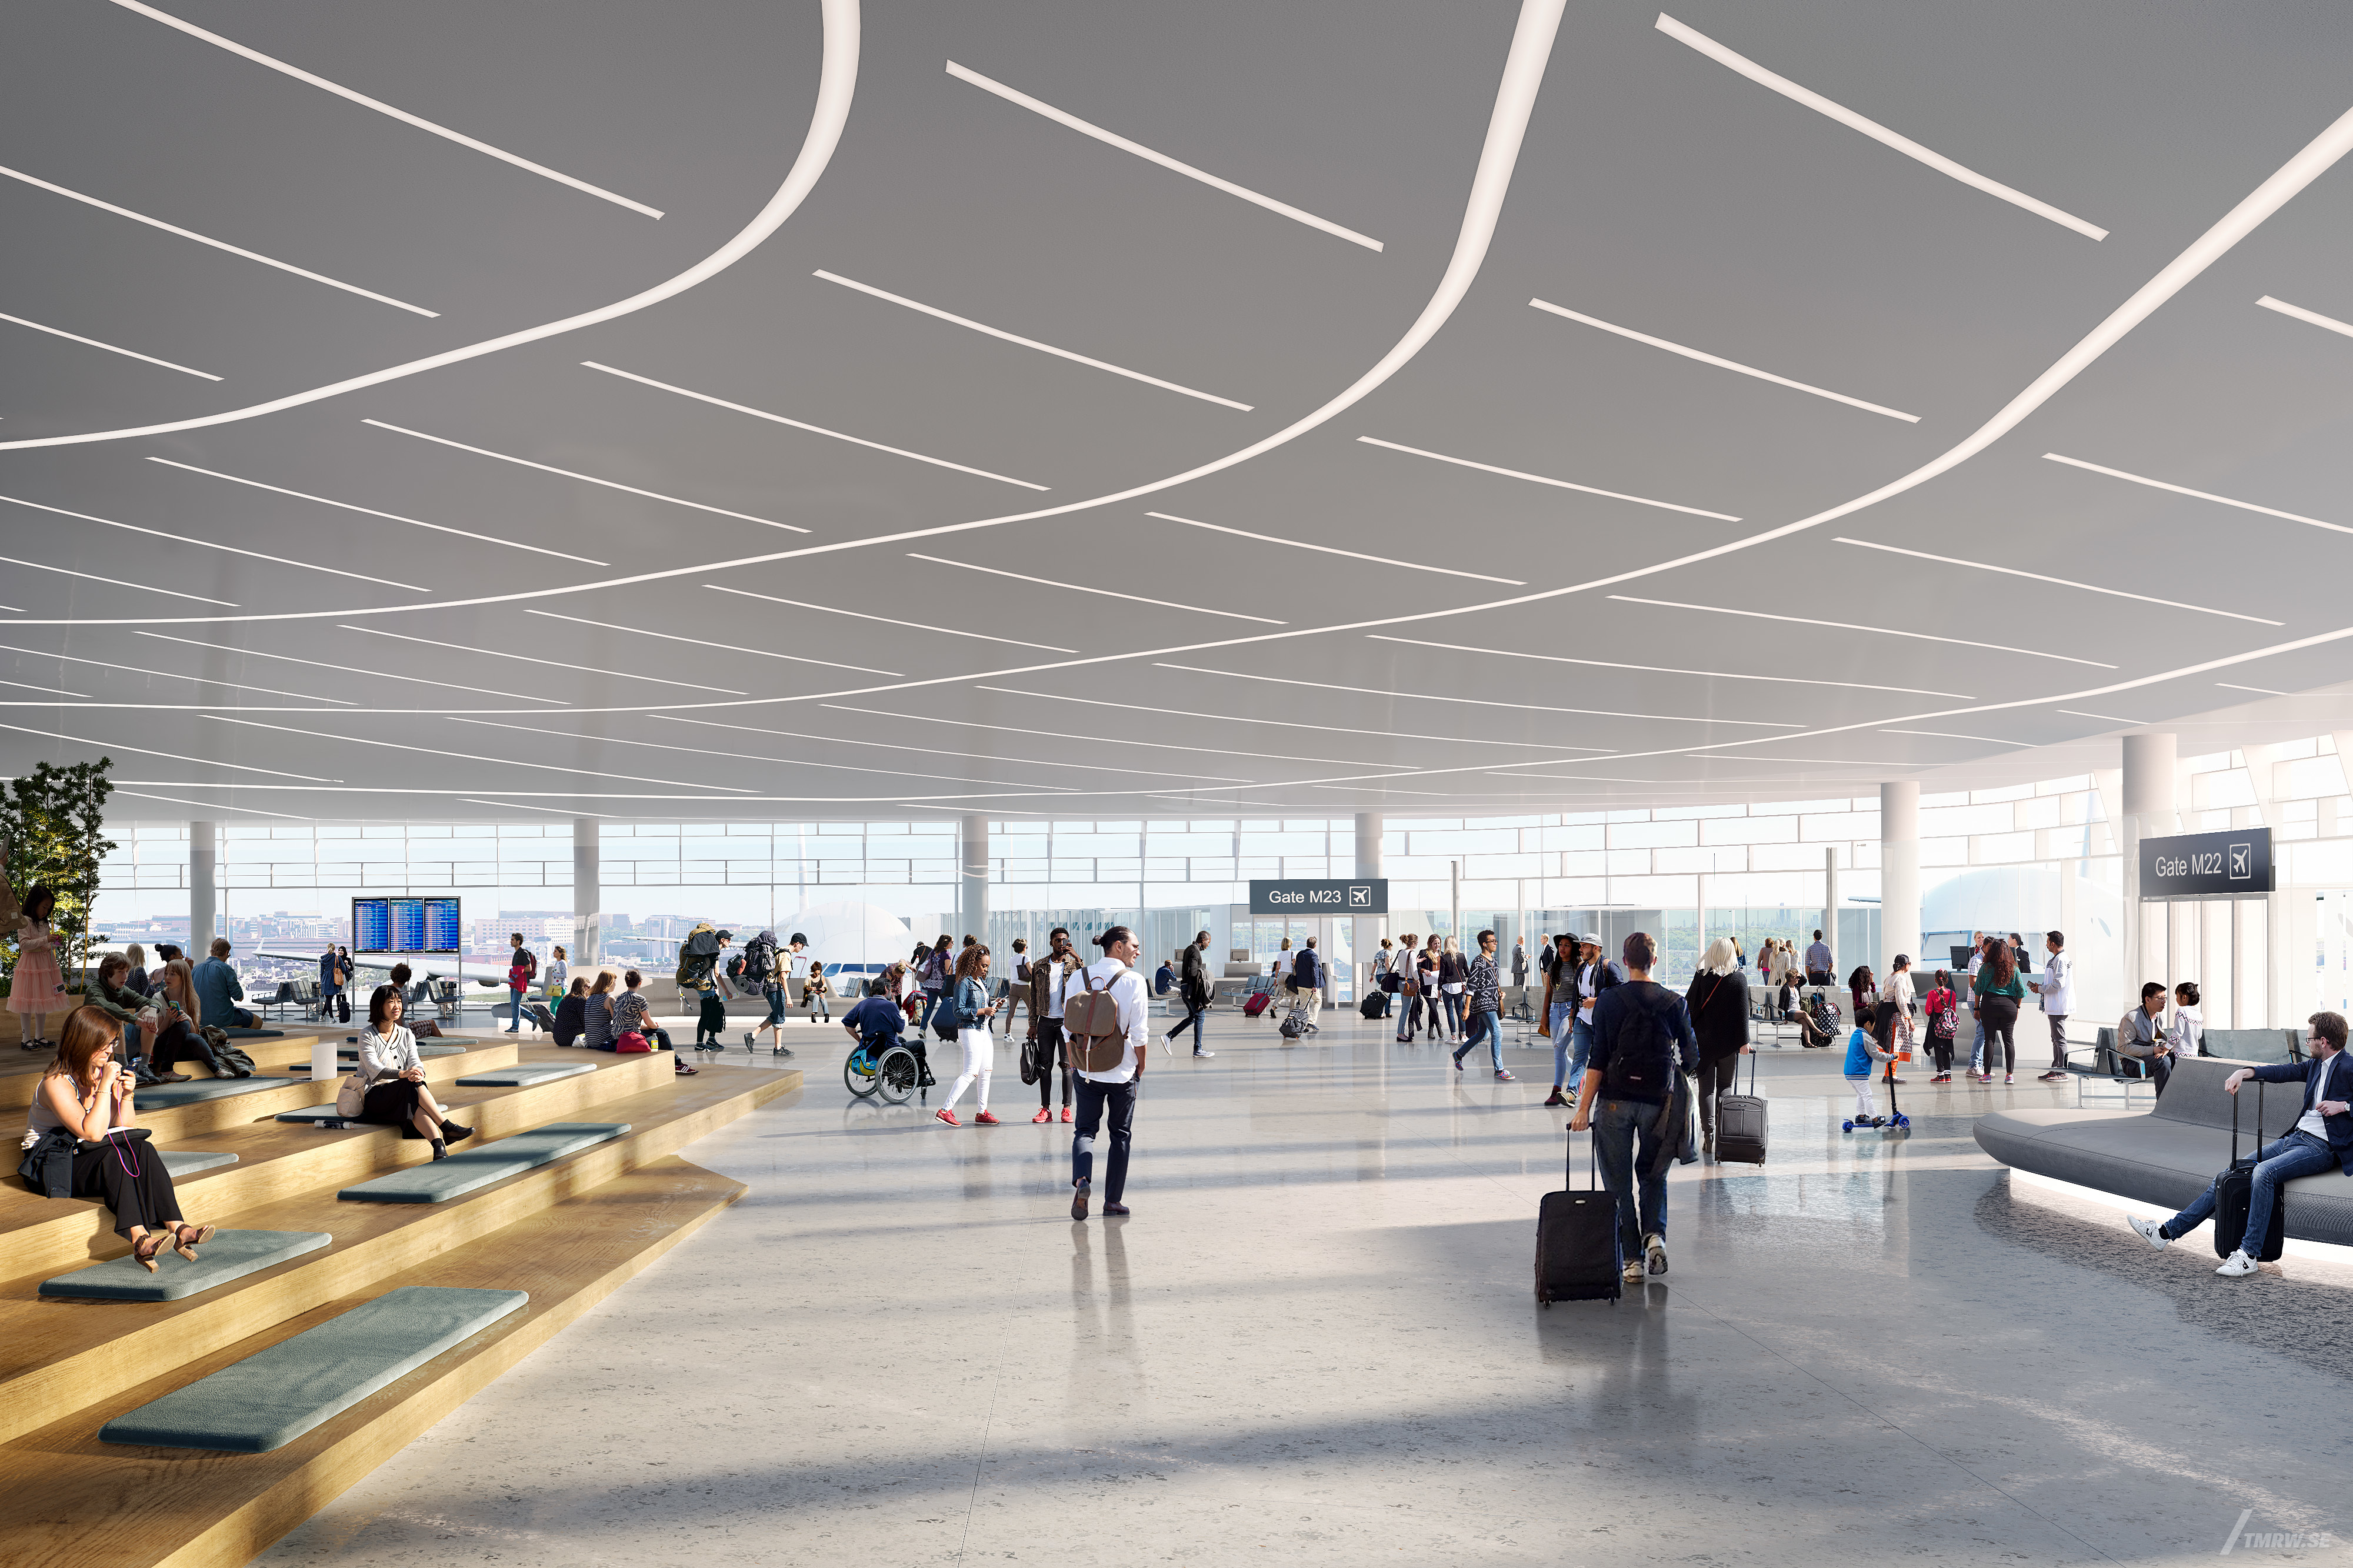 A rendering of the new global terminal at O'Hare Airport.